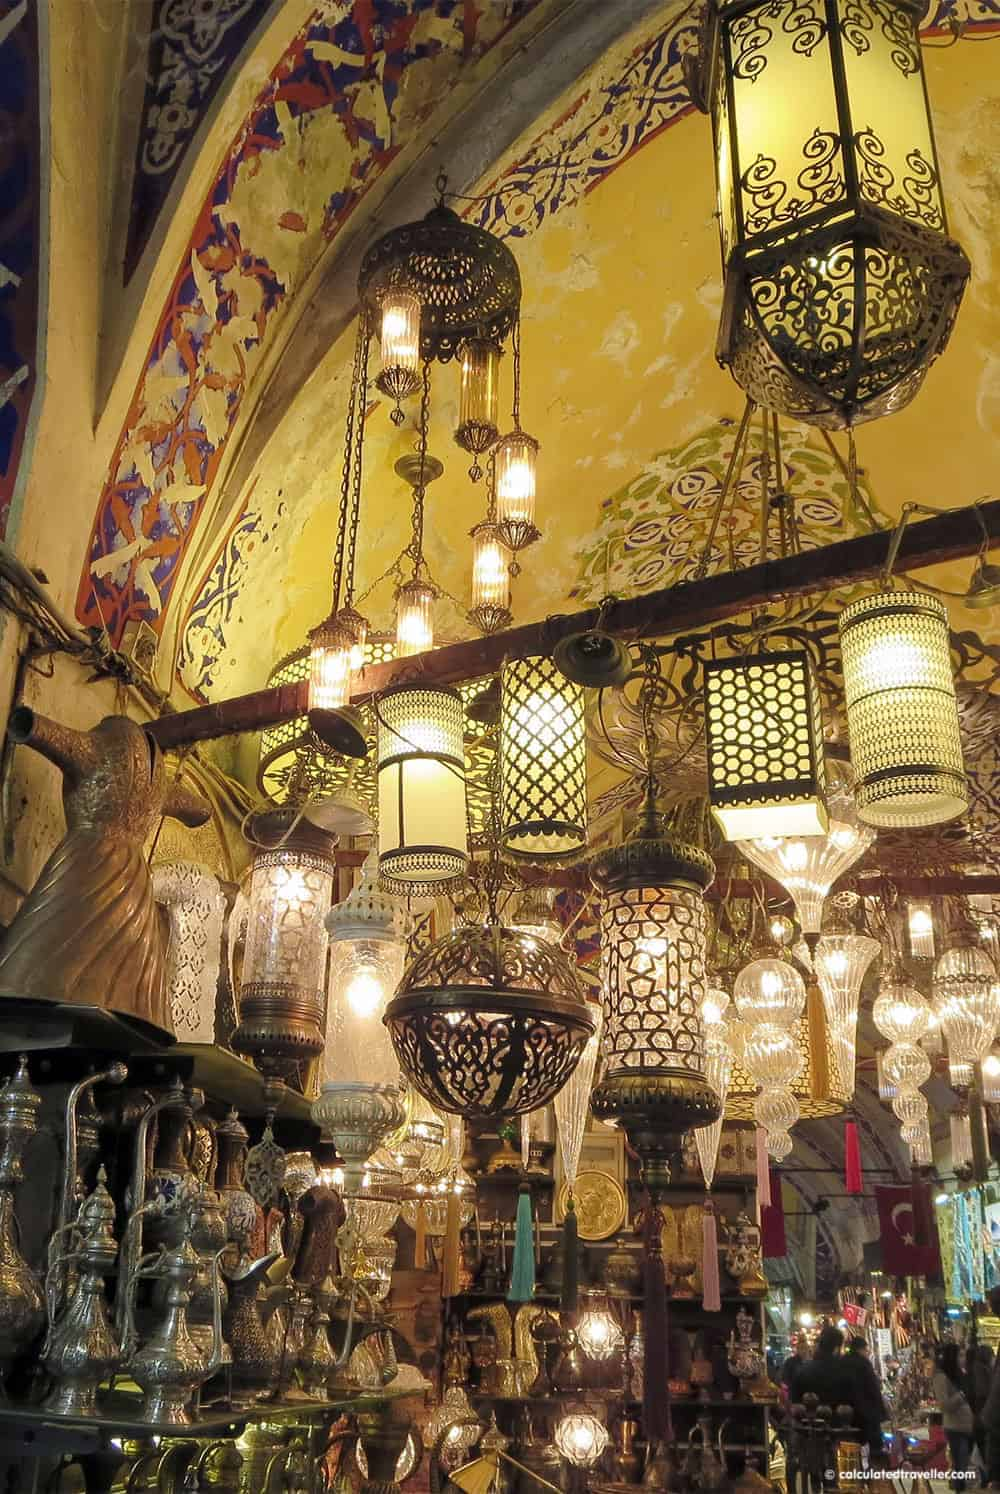 Grand Bazaar Istanbul Turkey in Photos by Calculated Traveller Magazine